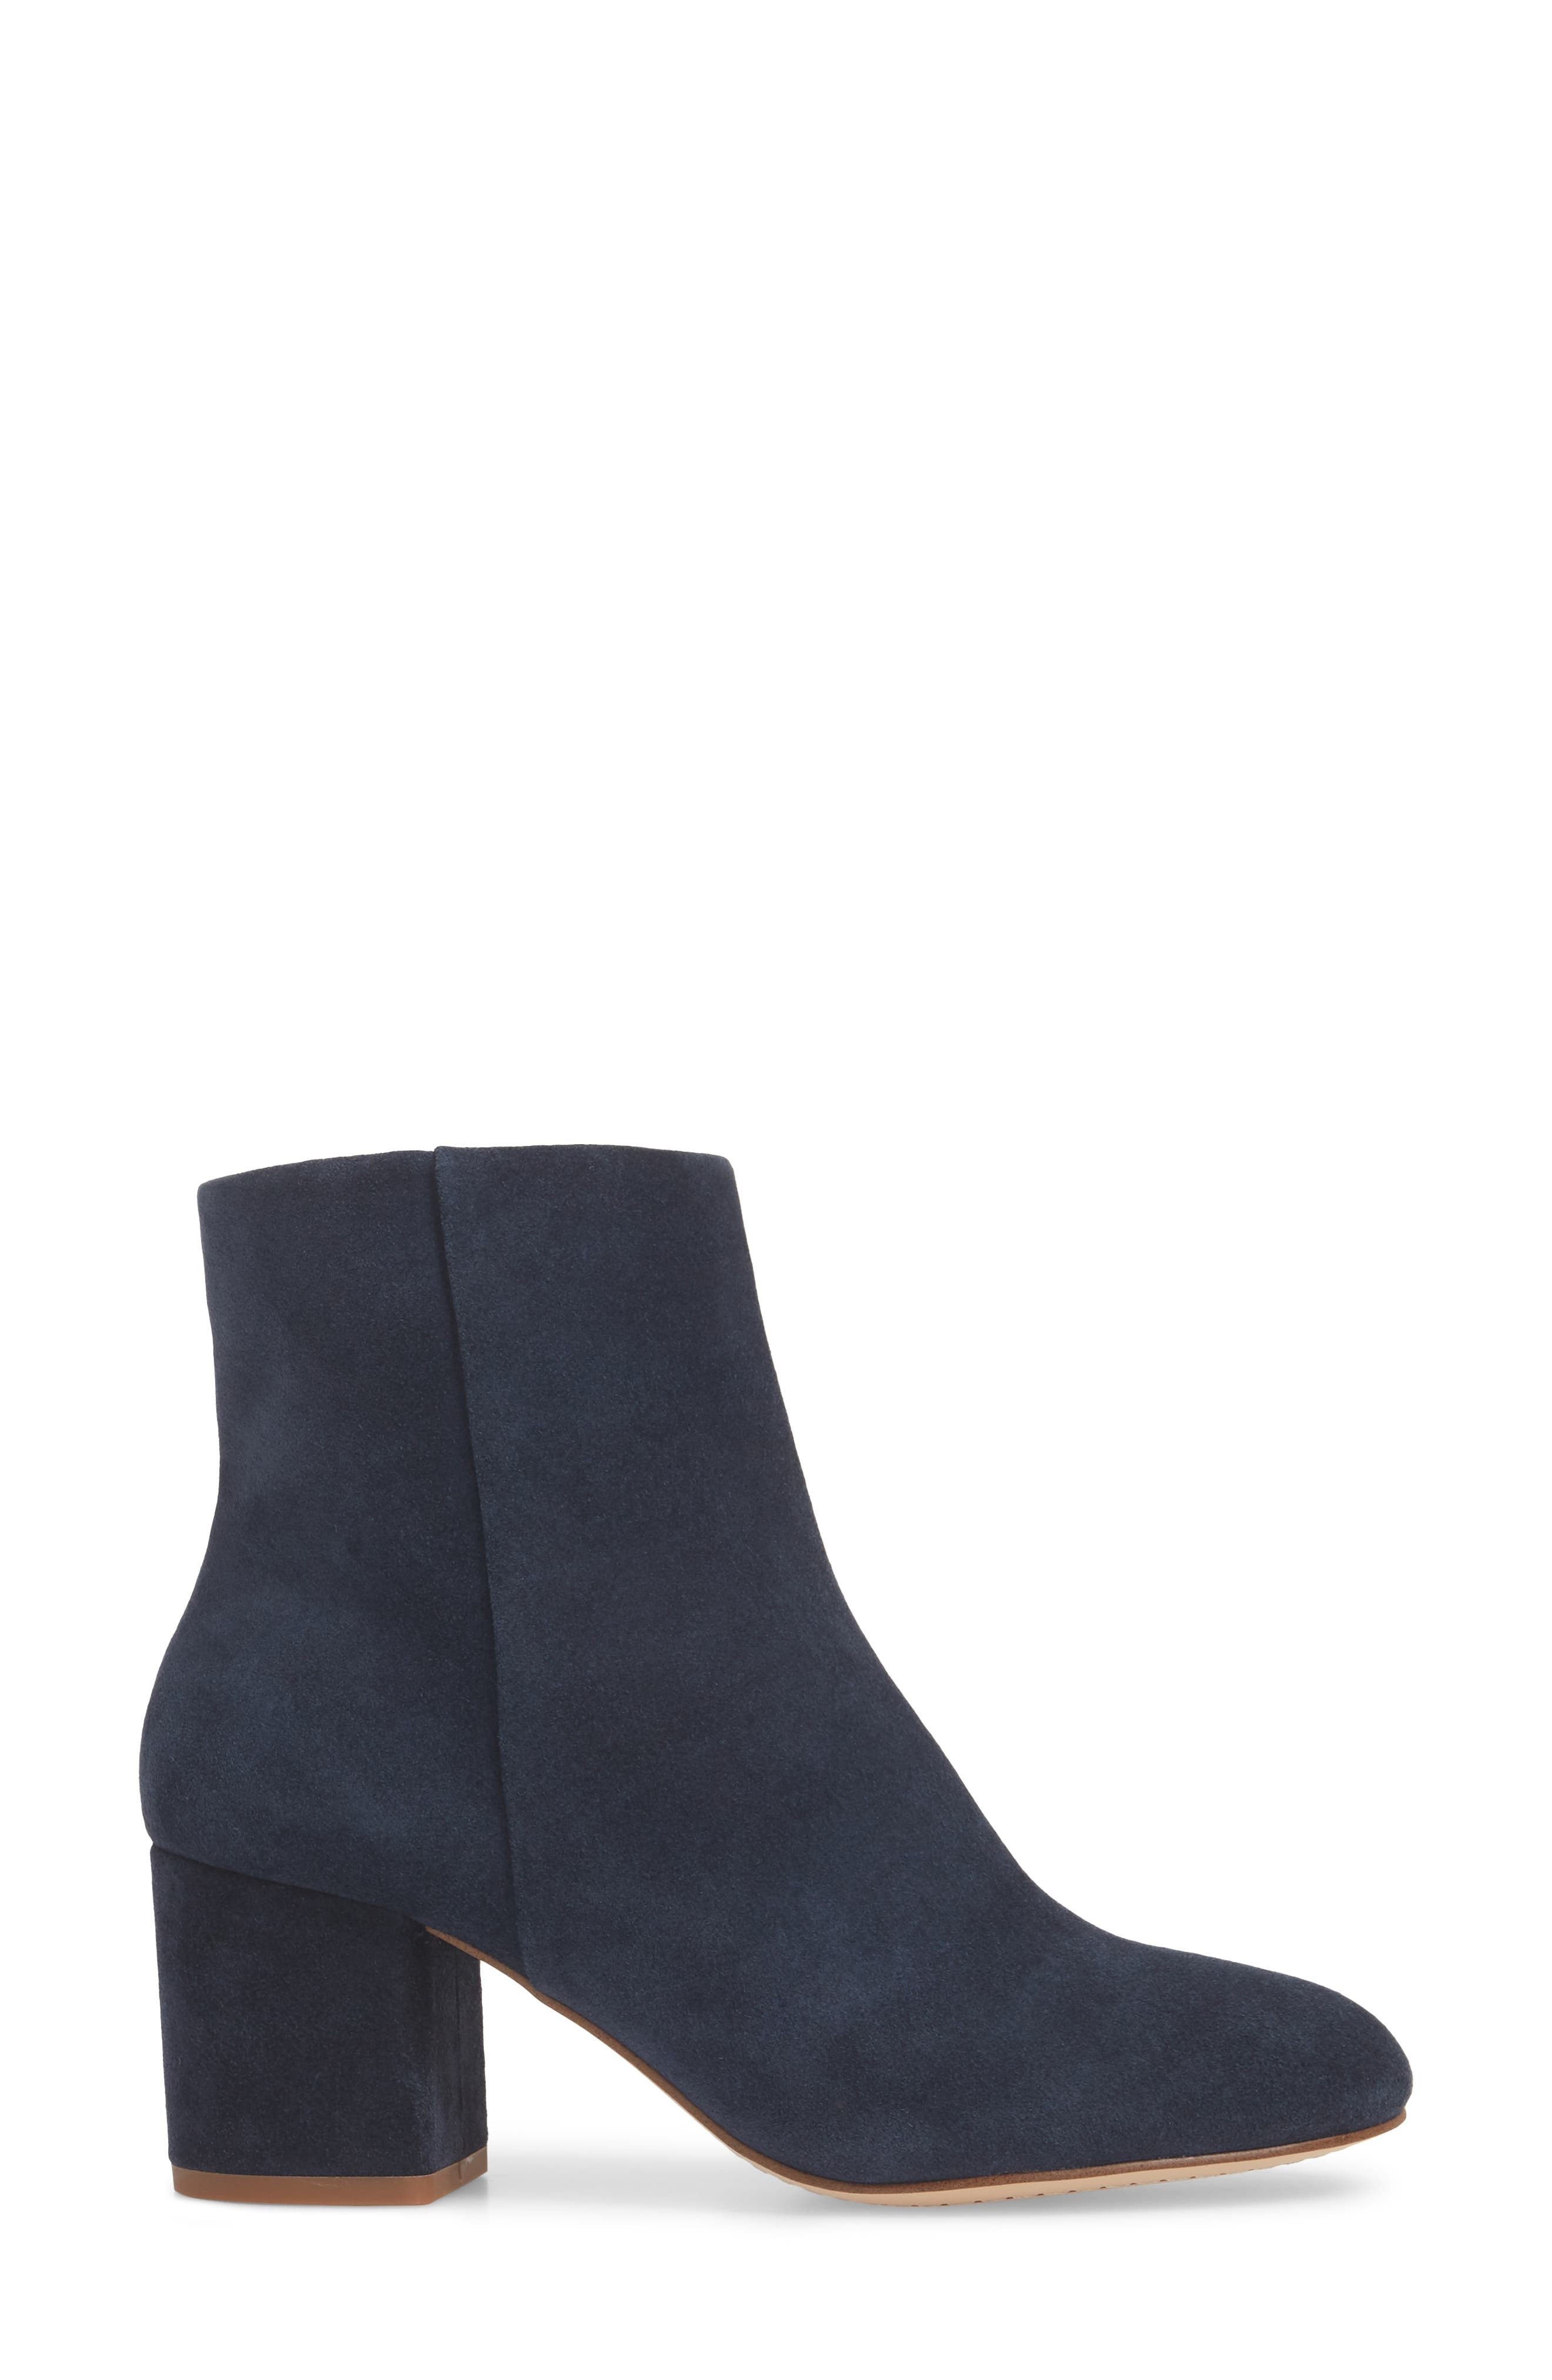 Nixie Bootie,                             Alternate thumbnail 3, color,                             Navy Suede